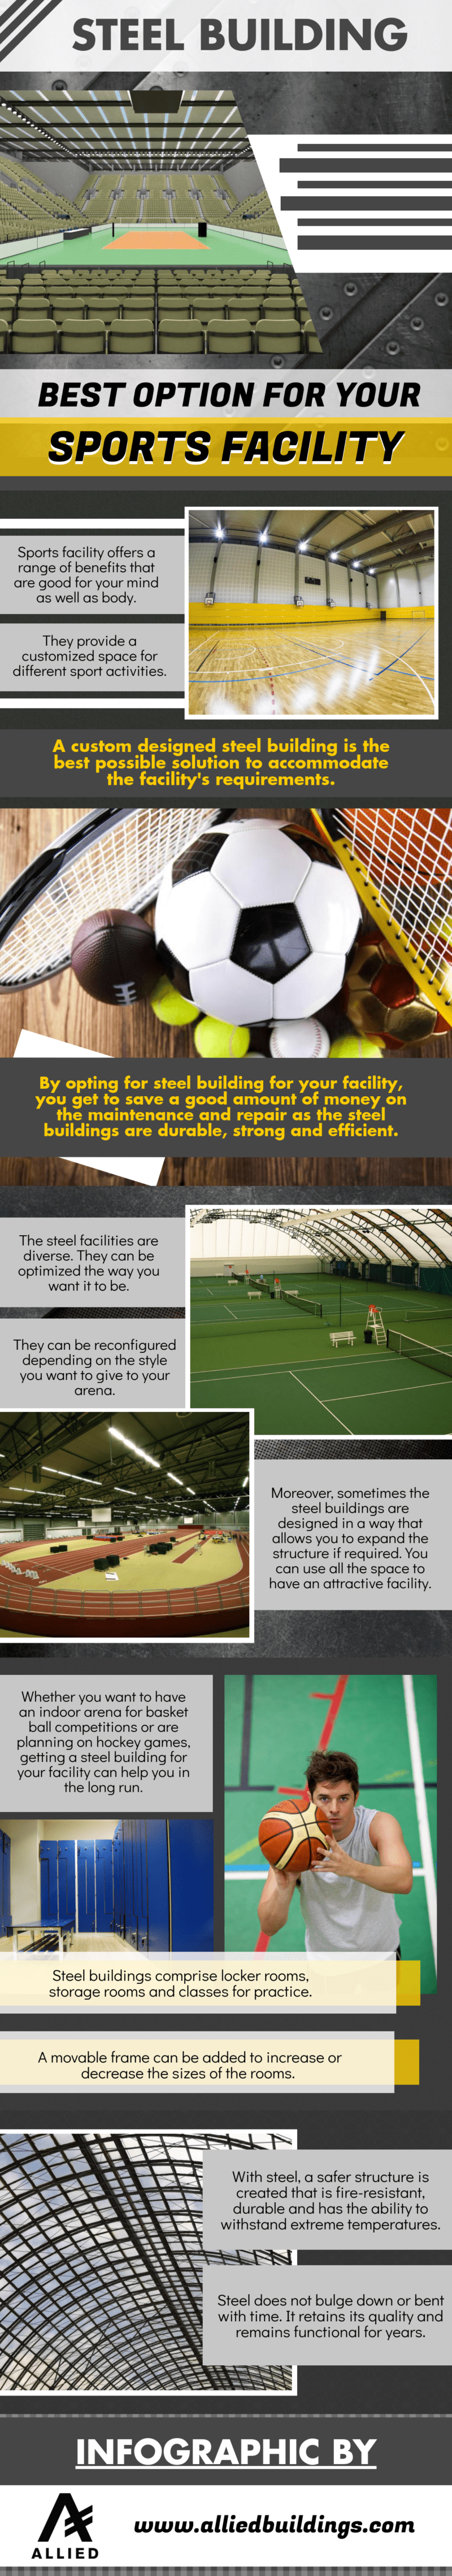 Steel building for a Sports Facility